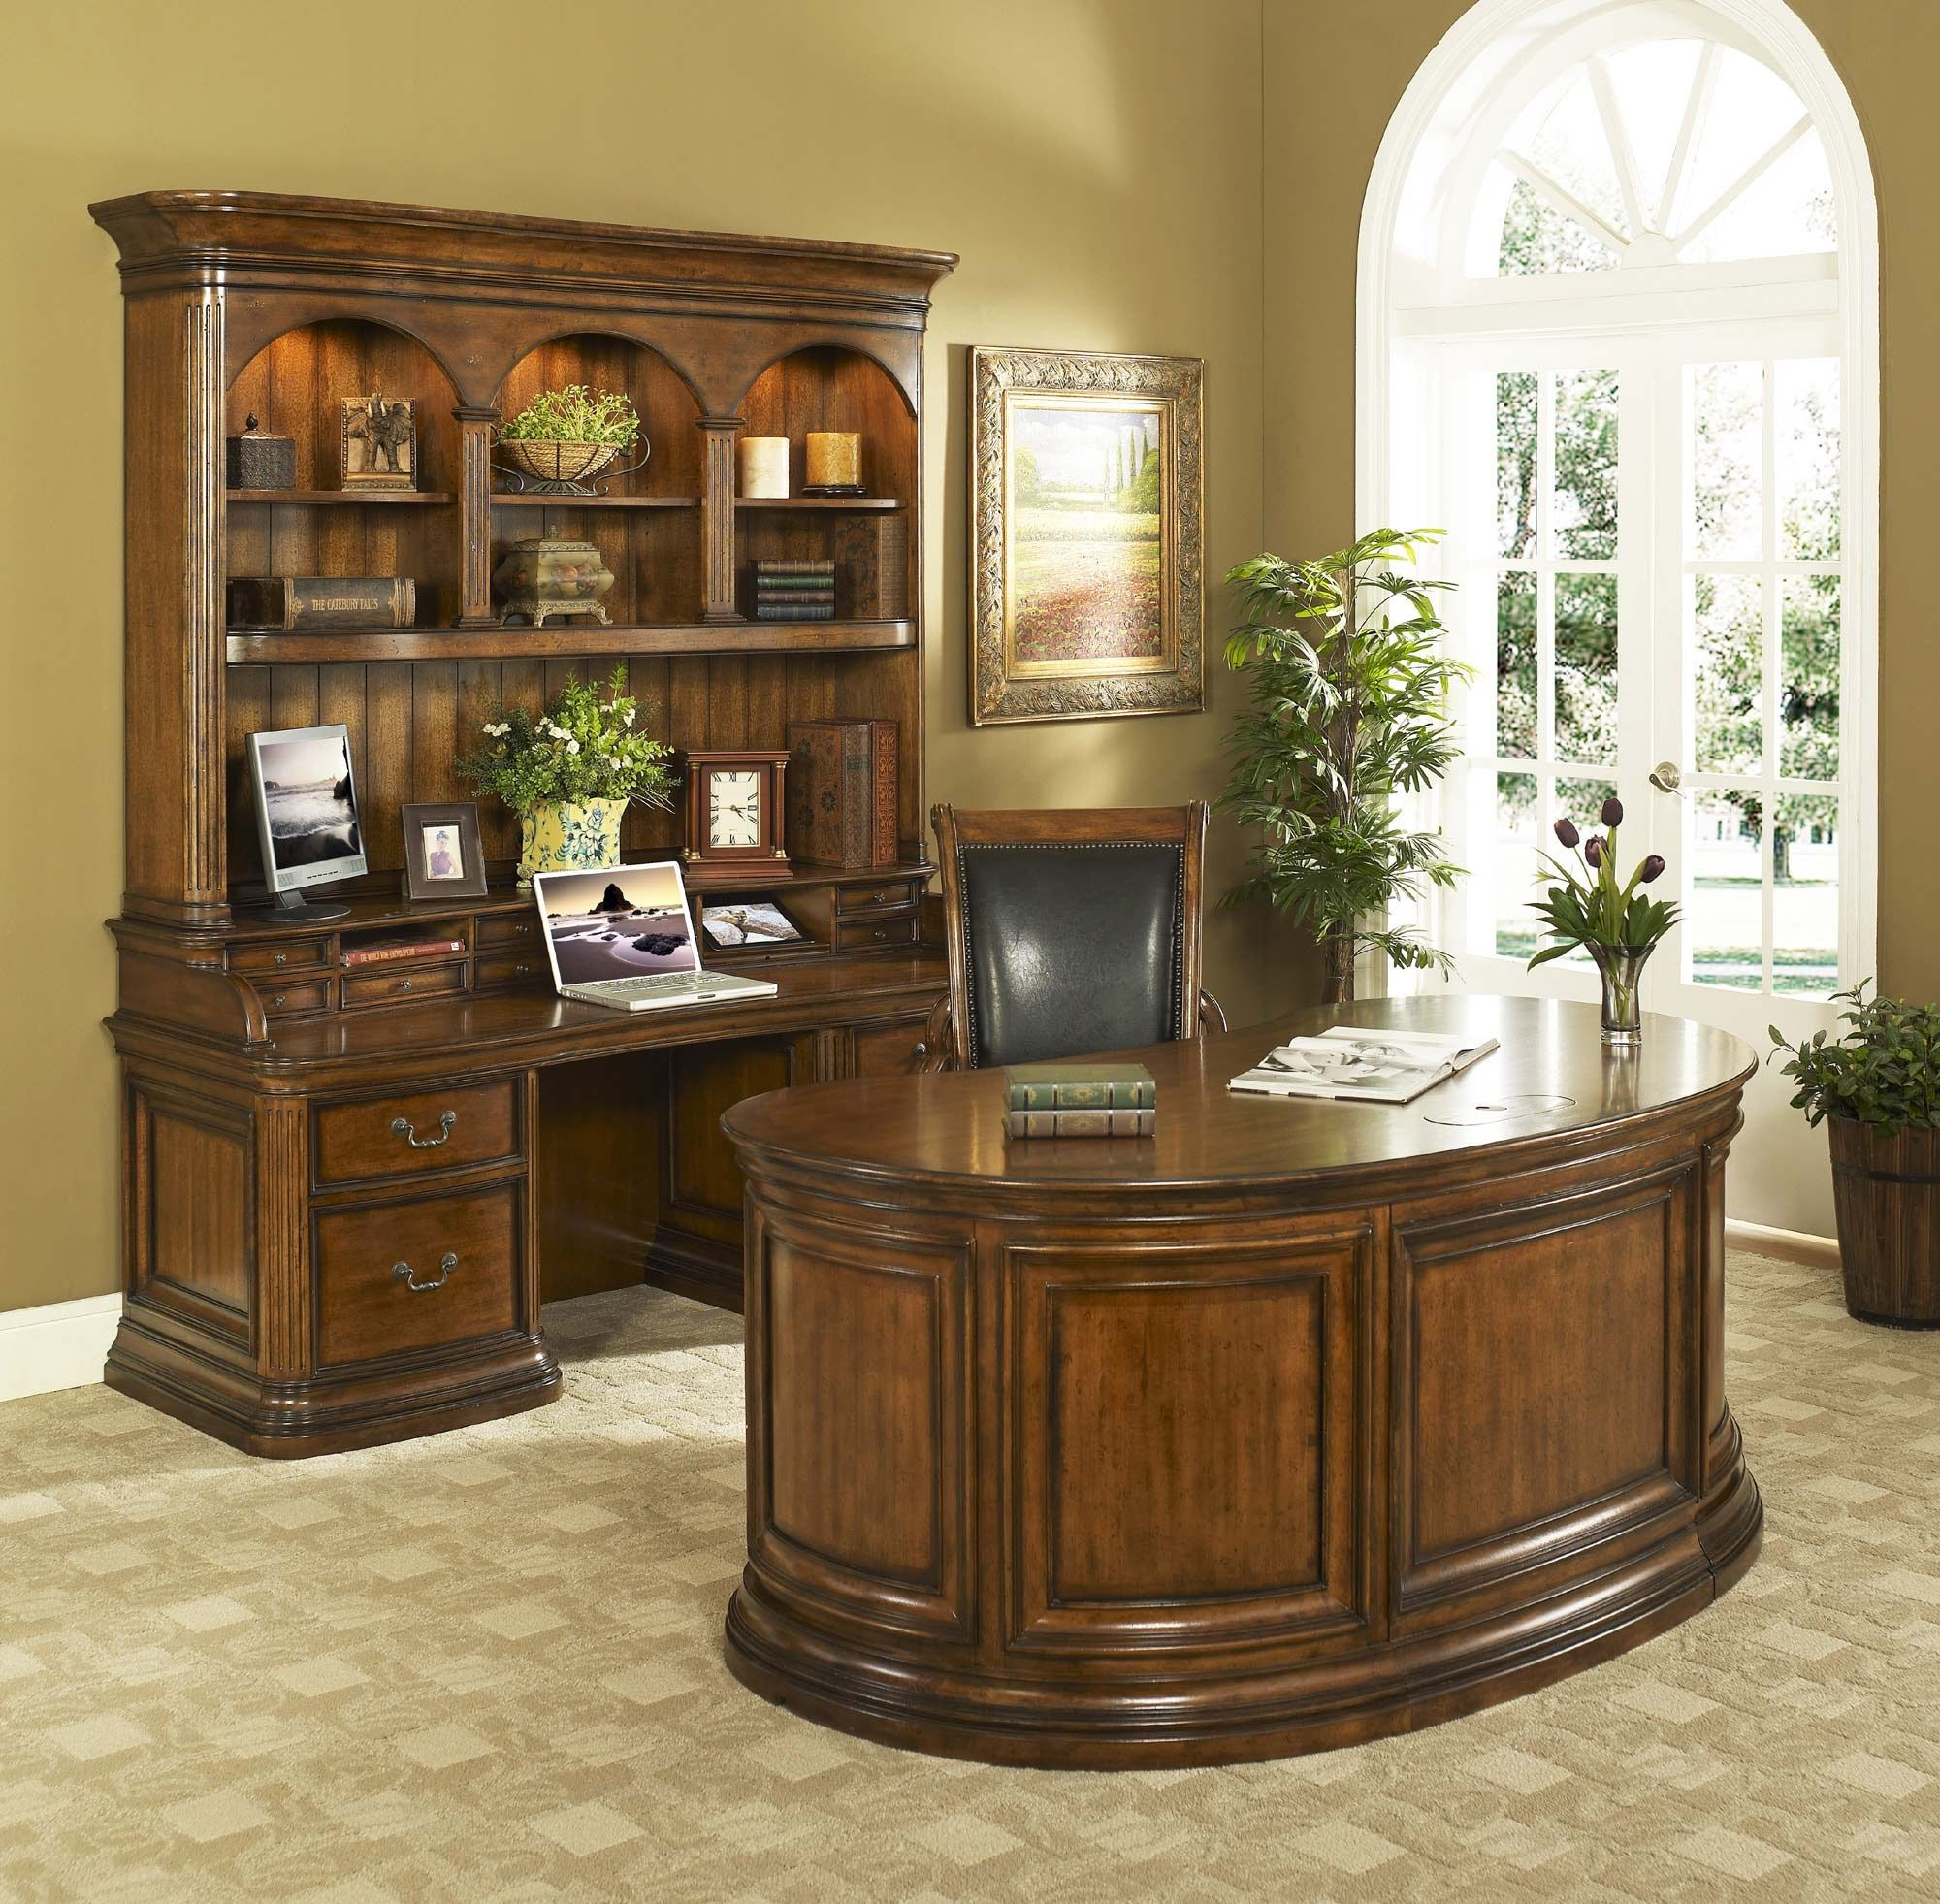 Pleasing Winsome 72 Kidney Desk And Arm Chair In Cherry Turnkey Download Free Architecture Designs Itiscsunscenecom